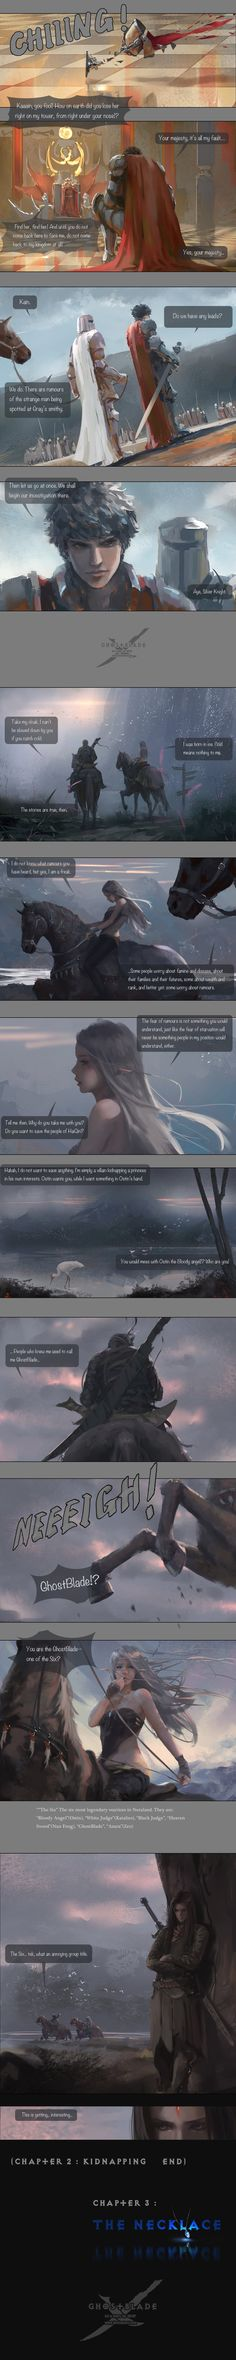 GhostBlade - Chapter 2 : Kidnapping (part III) by wlop on deviantART